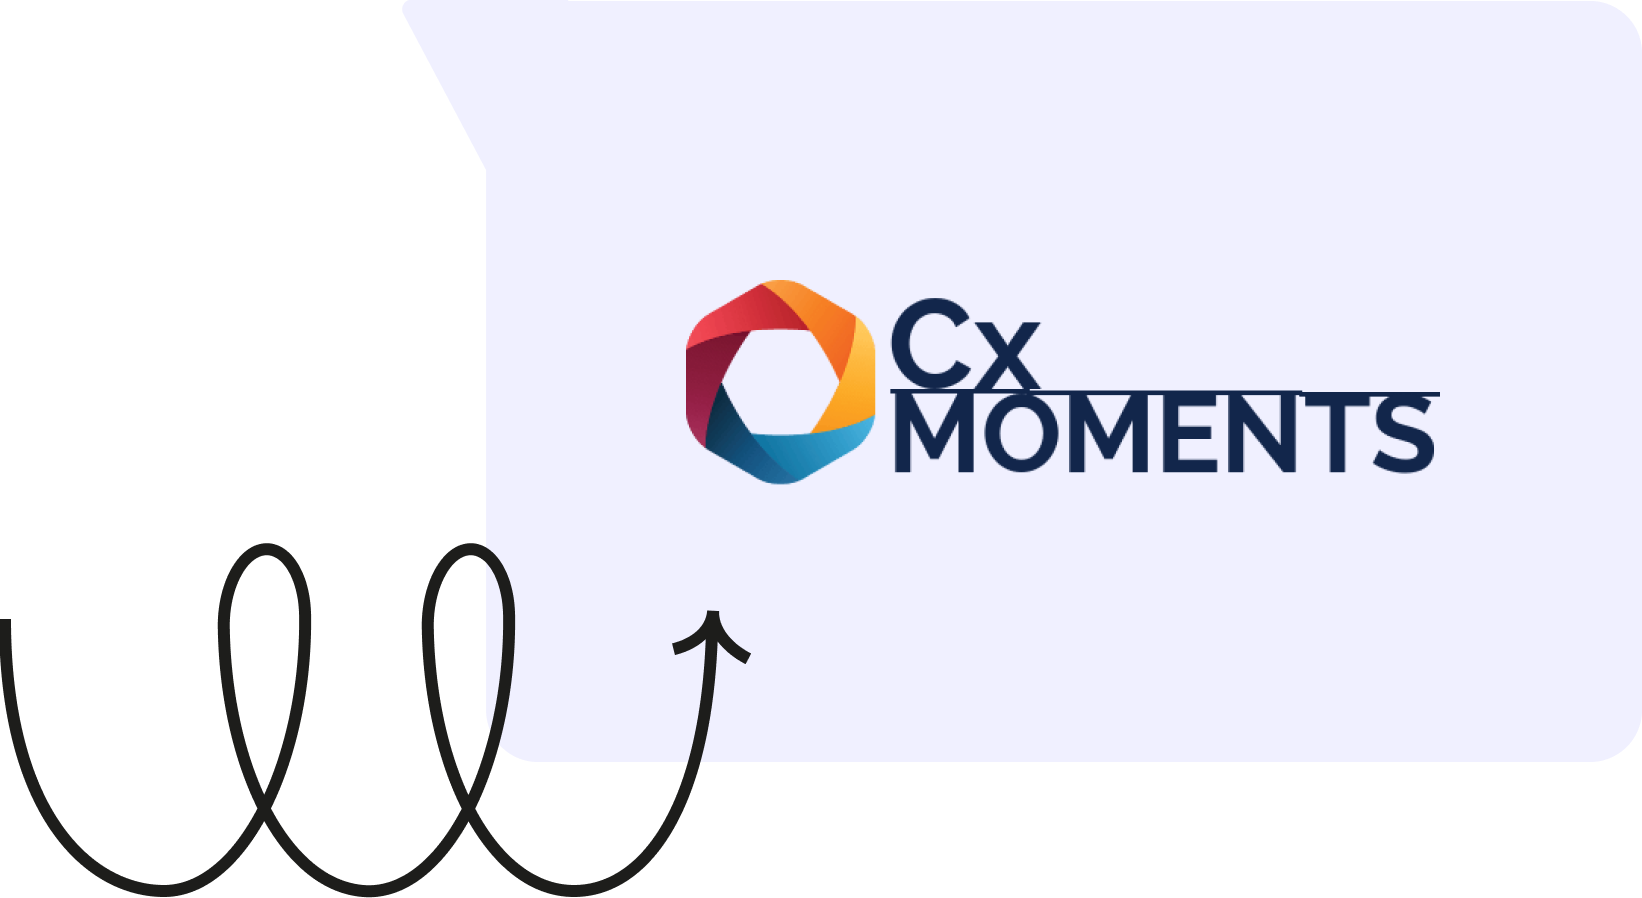 CX Moments integration with Dixa customer service software